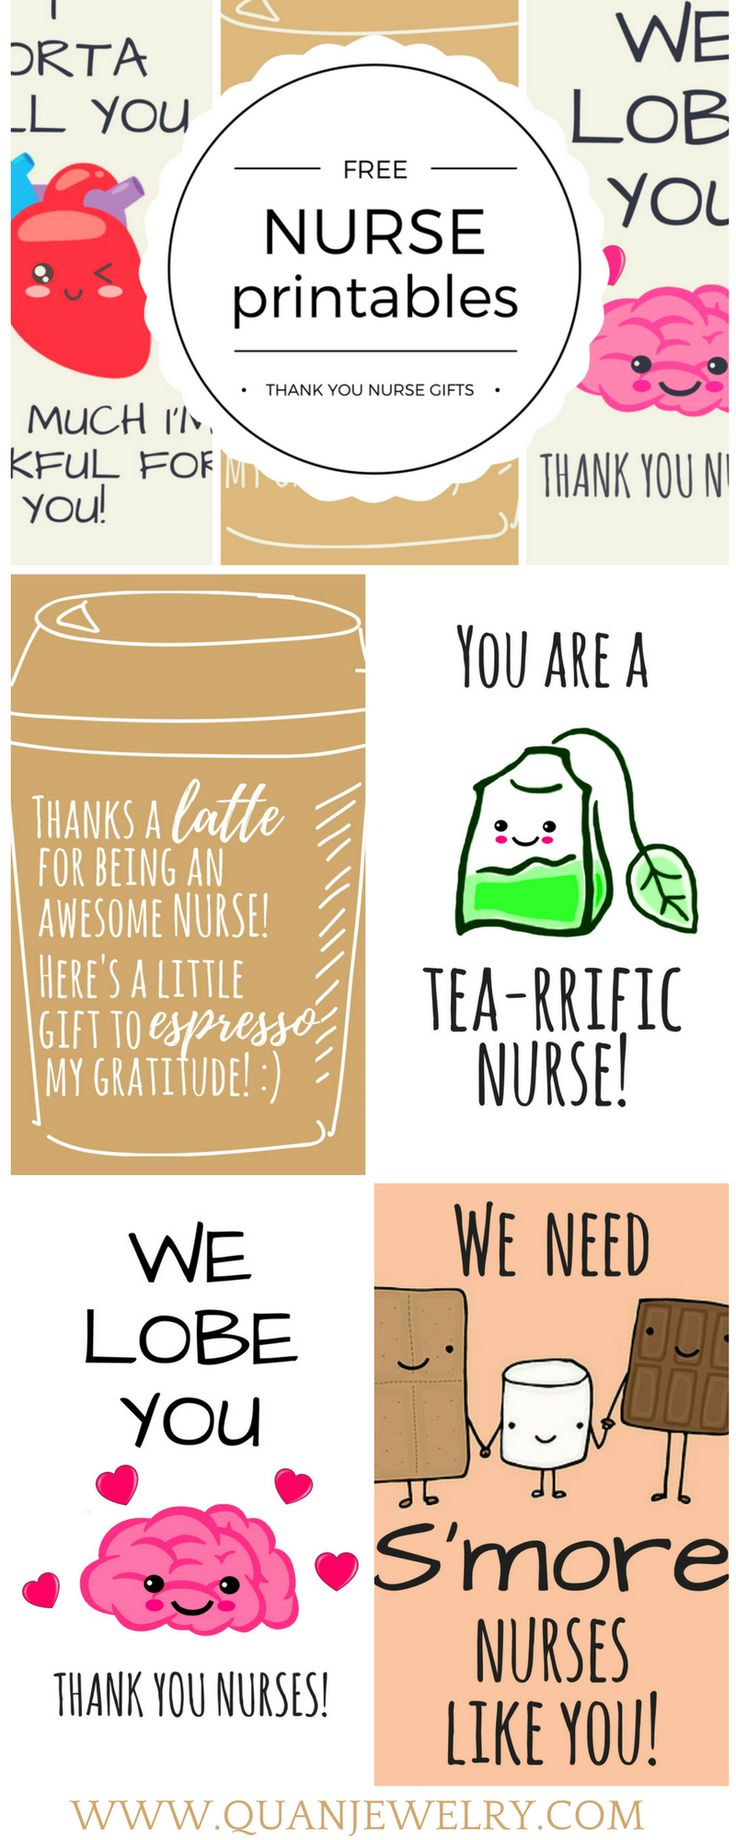 Here are some cute nurse appreciation thank you cards and gift tags that you can download, customize, and print for free. #nurse #nurses #nurseappreciation #nurseweek